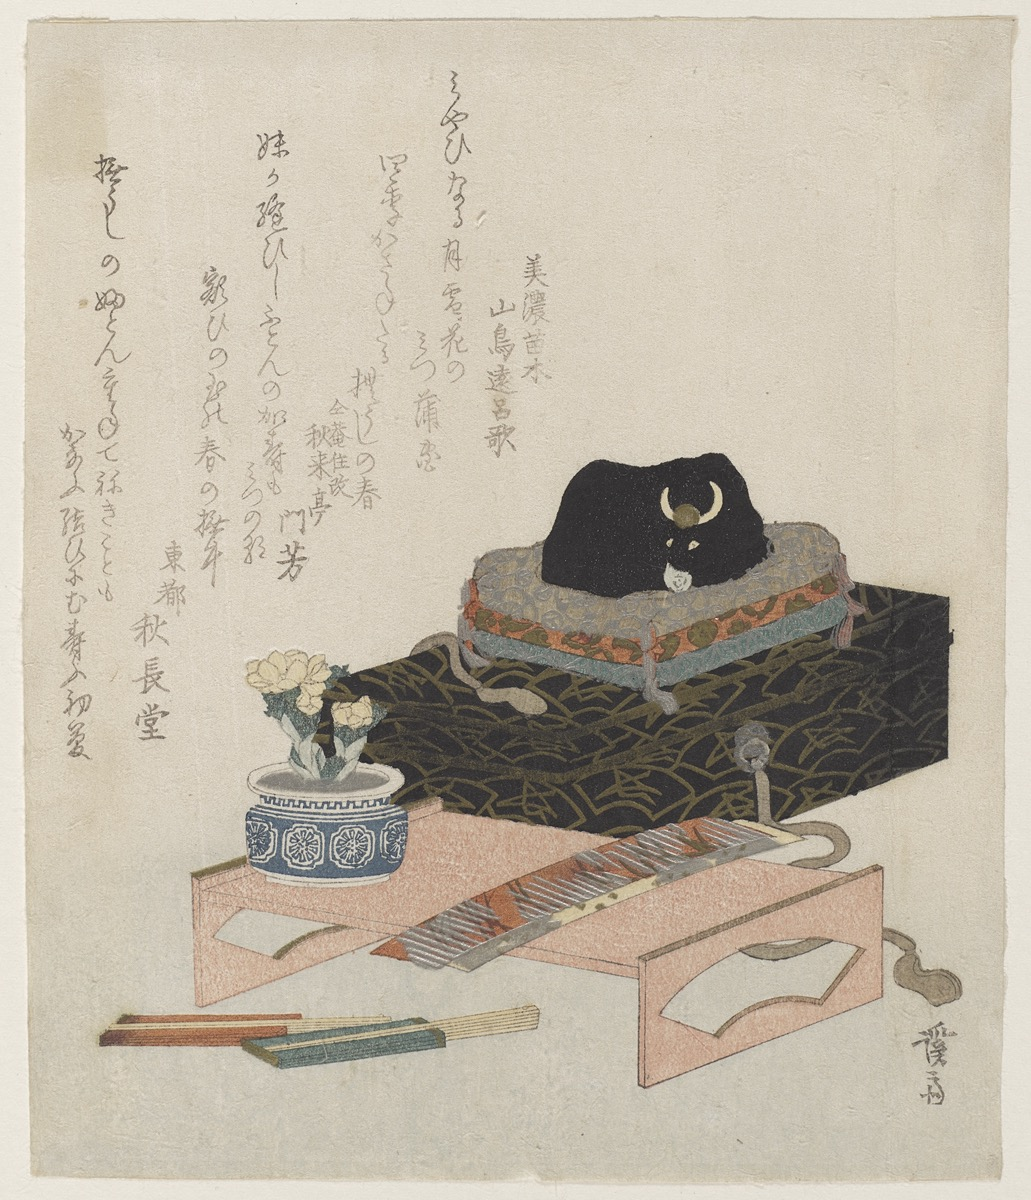 1. Ox figurine and writing desk, Keisai Eisen, 1 9/16 x 6 11/16 inches, color woodblock print with metallic pigments and embossing on paper. A vertical rectangular print featuring a black ox figurine resting on top of small futon mats atop a writing box near a writing table and other objects. The vignette is situated in the lower two thirds of the print. The sleeping ox figurine sits on three small multi-colored futon mats which in turn rests on a black and gold patterned writing box. In front of the box is a pale peach writing desk with short legs showing a fan shaped cut out on the sides. Folded fans lay near the desk and a blooming flower in a blue and white pot sits on the edge of the desk. Poems written in Japanese climb from the center left of the print to the upper center. 2. The print is seen in axial light showing the gold and silver details on the objects. The black ox now appears to be charcoal in color and outlined in black. 3. Detail of the ox figurine and futon mats. The ox's legs, tail, skin folds and facial features are outlined in black. It has ivory-colored horns on either side of a gold disc on its forehead and gold eyes. The futon mats are each have a different pattern and color: silver on beige, gold on rust and silver on teal.